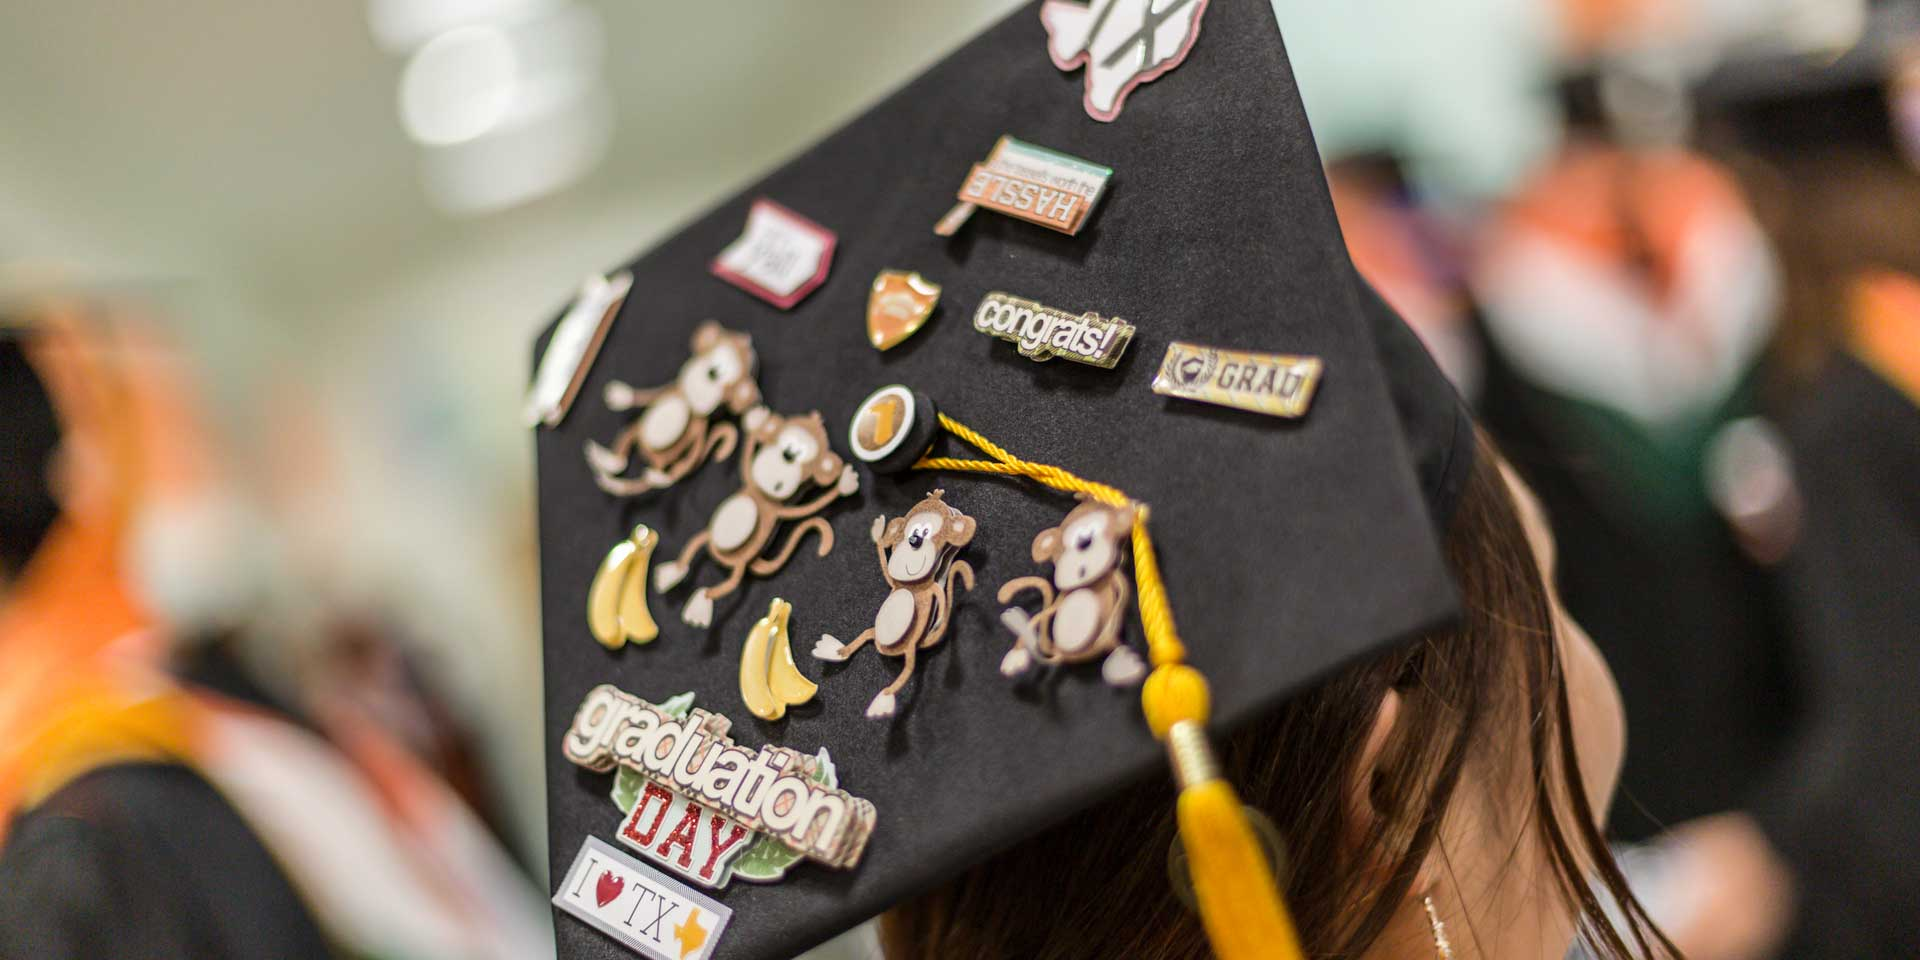 She earned a master's degree in finance and personalized her mortarboard with characters representing her birth during the Year of the Monkey and with Texas-themed decorations.